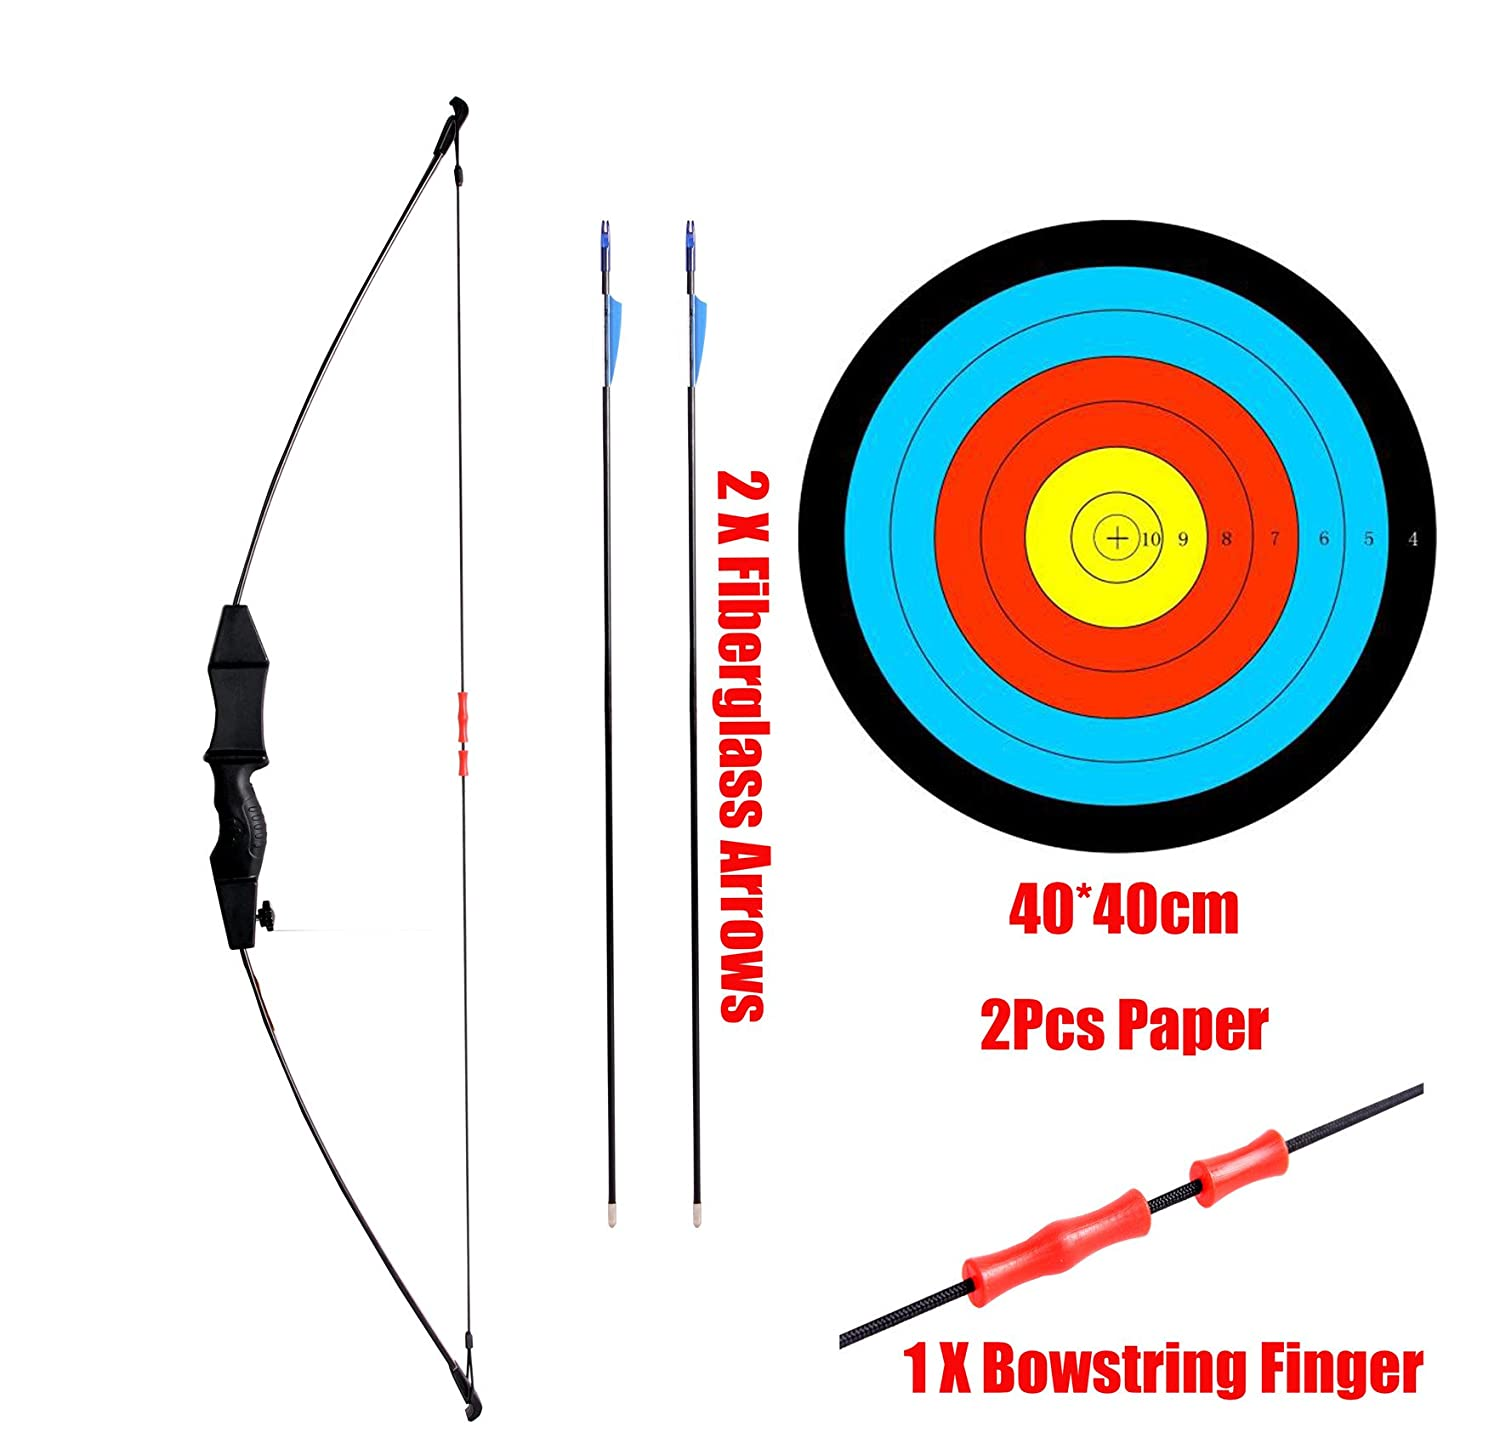 ZSHJG Youth Recurve Bow and Arrow Set Children Junior Archery 45 Target Practice Kids Gift Including 6 Arrows